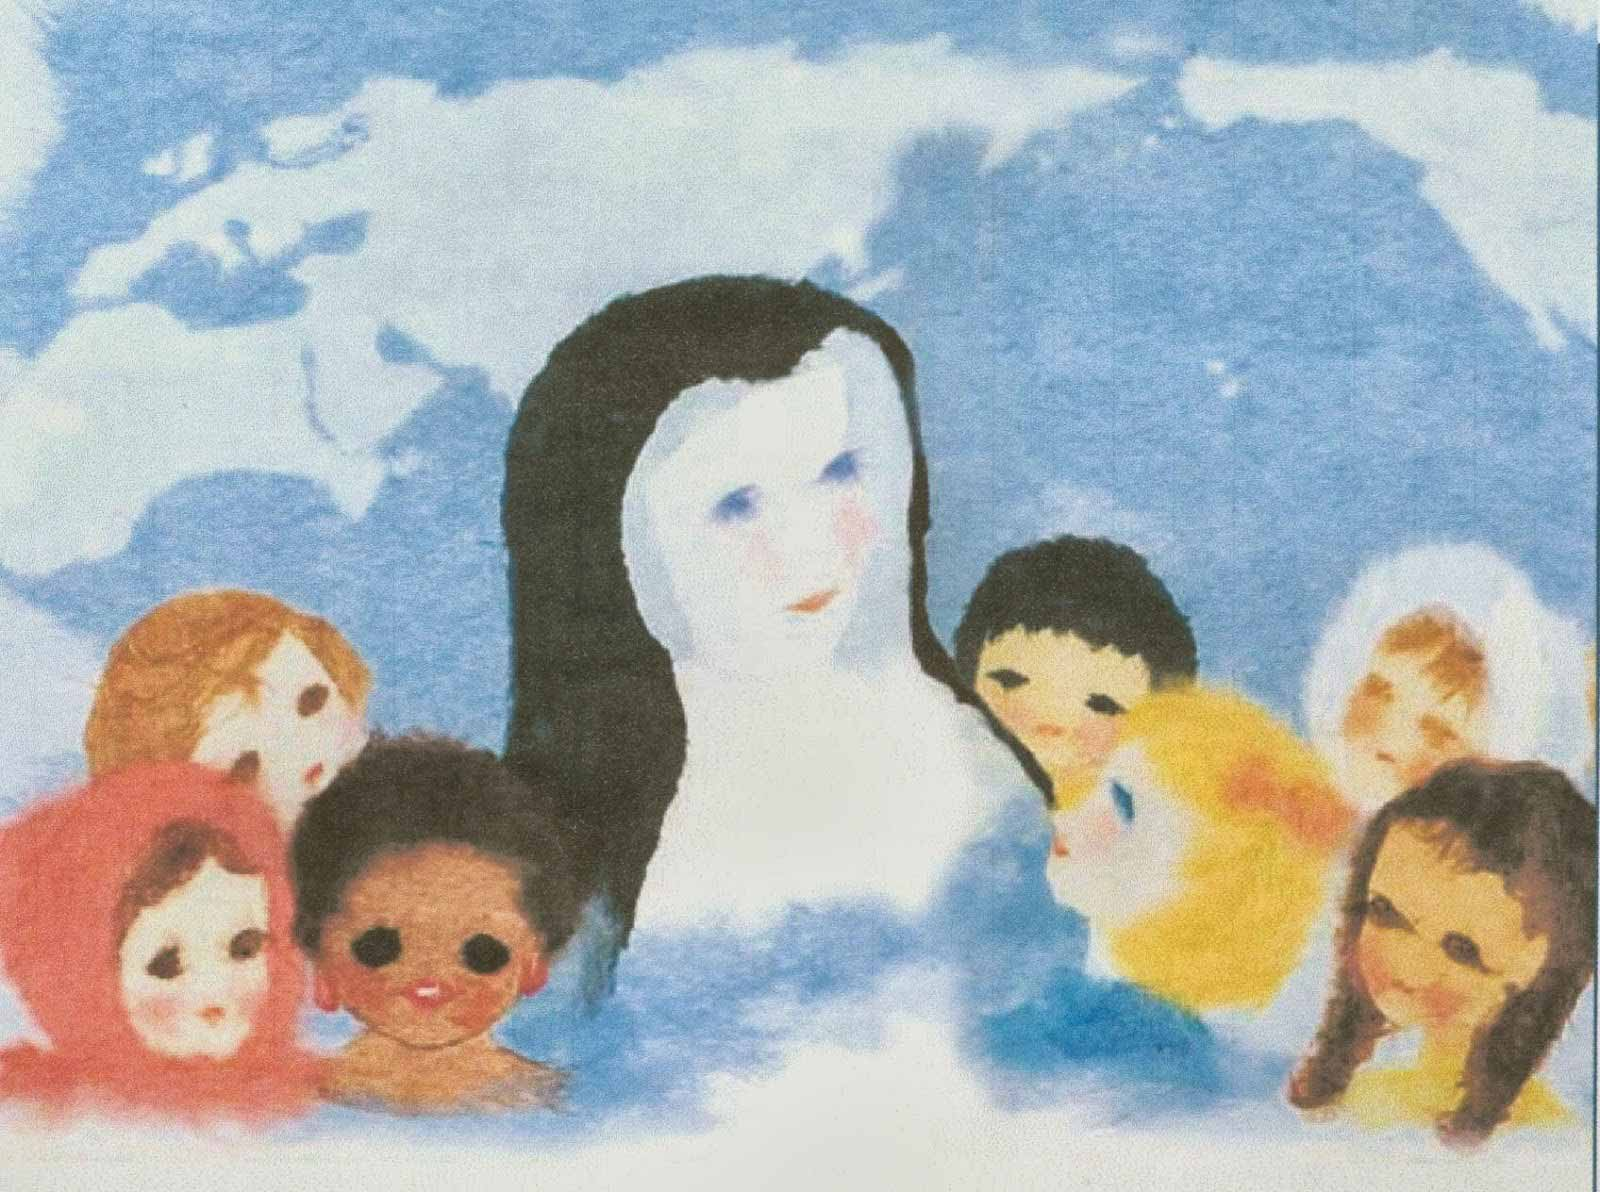 A child's painting of Blessed Theresa and children of the world.